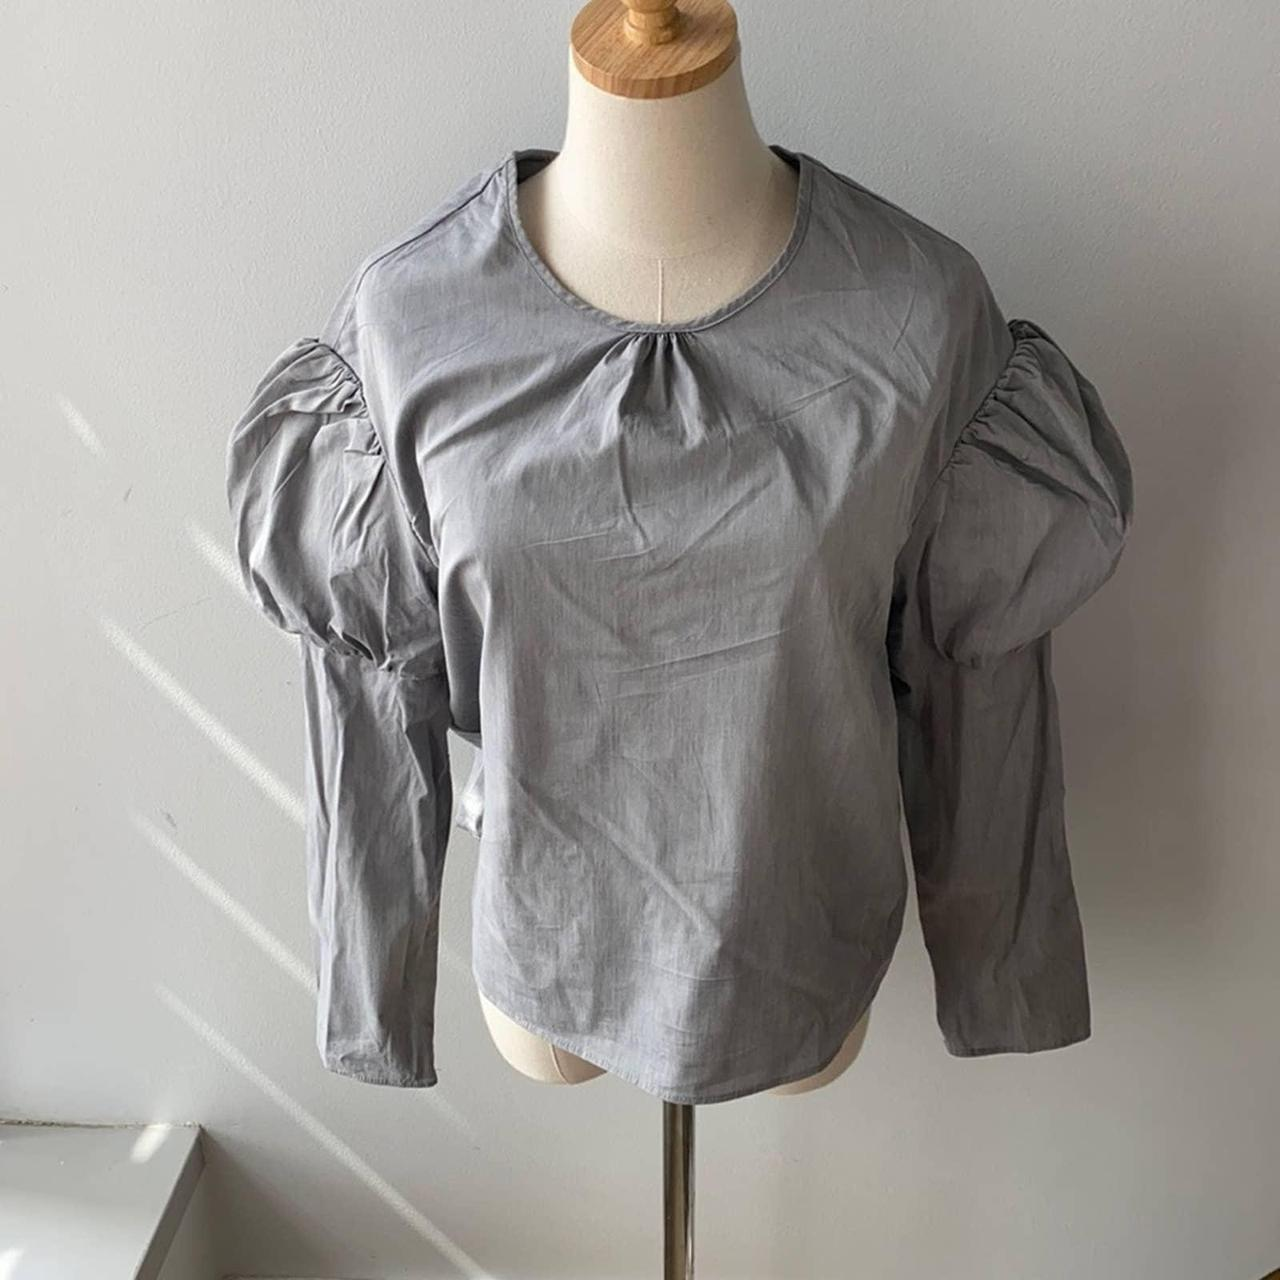 Product Image 1 - Drew grey cotton blend puff